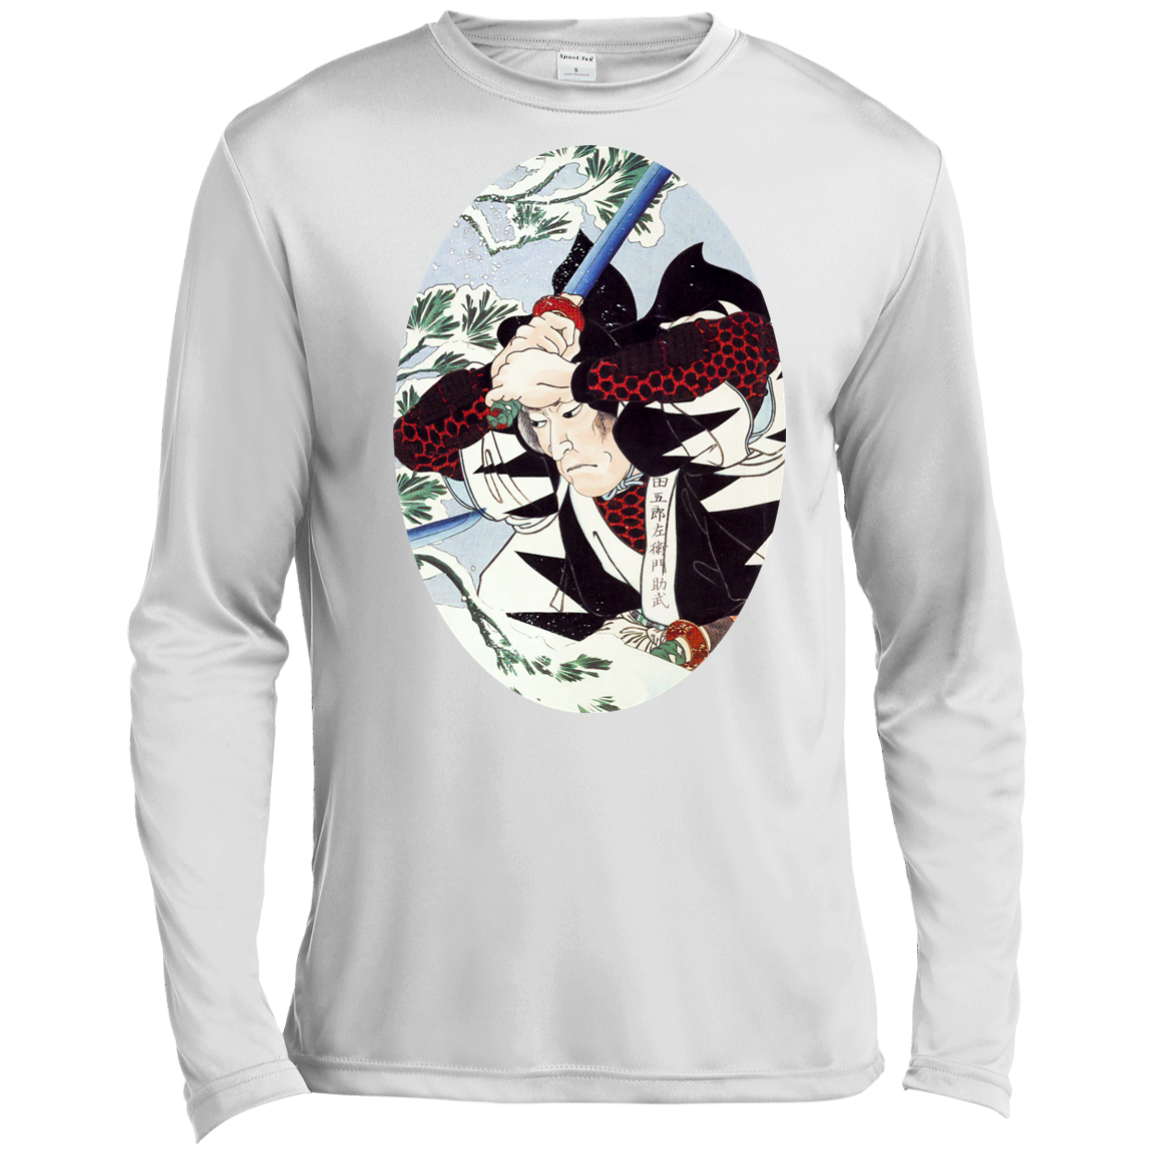 Winter Samurai Battle Long Sleeve Moisture Wicking - Martial Arts, Brazilian Jiujitsu, Karate, Muay Thai Shirts